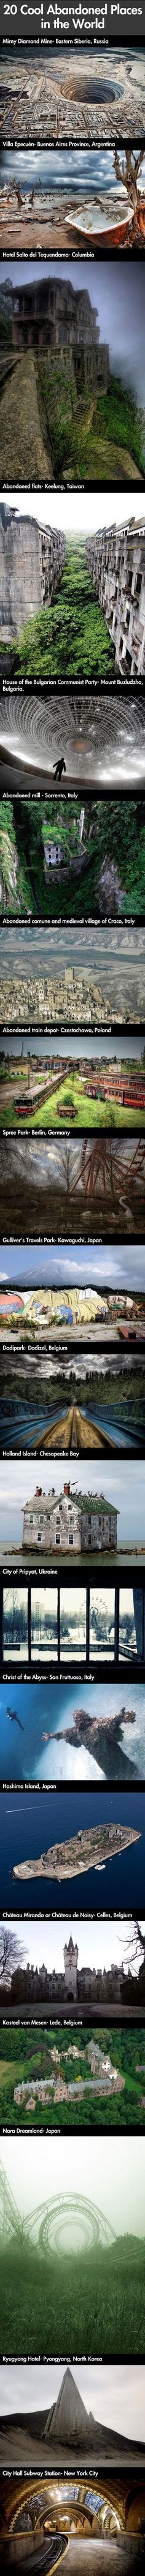 Amazing abandoned places in the world.